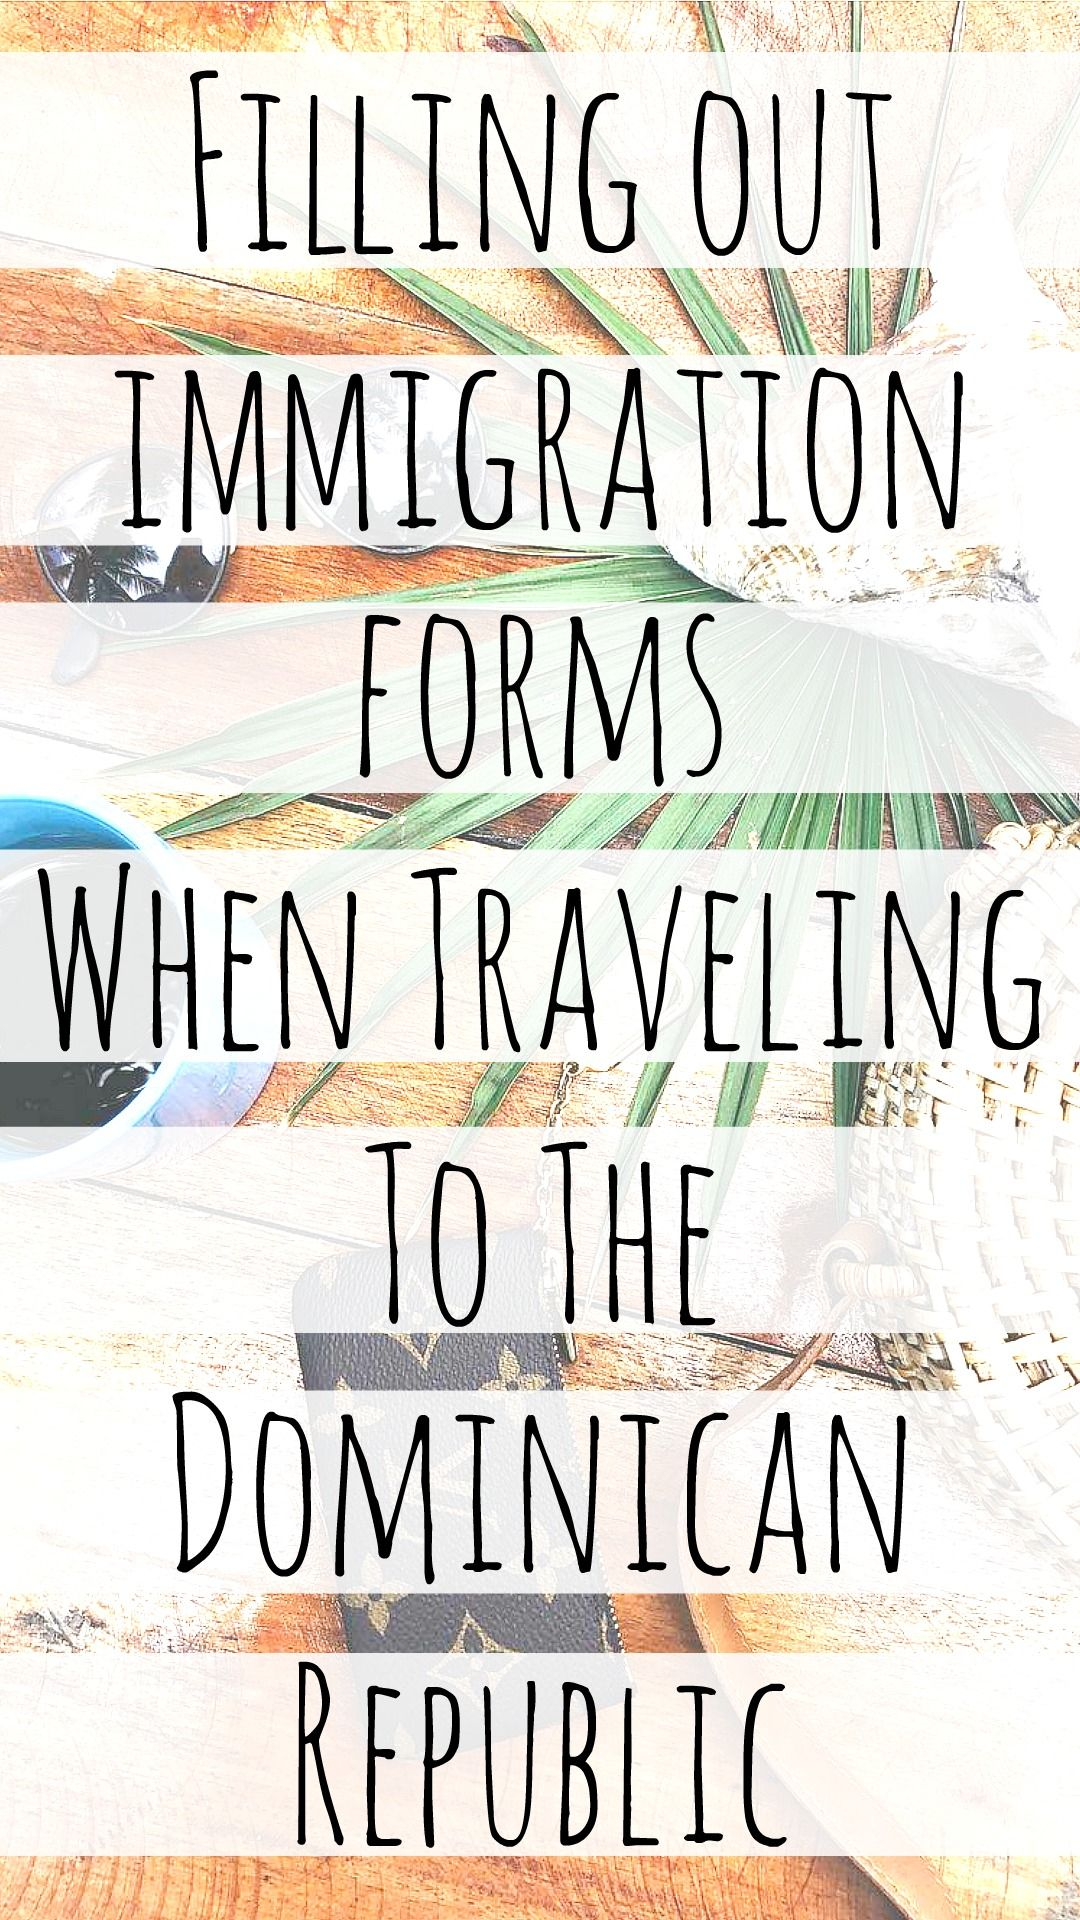 Dominican Republic Travel Advice >> Filling Out Immigration Forms When Traveling To The